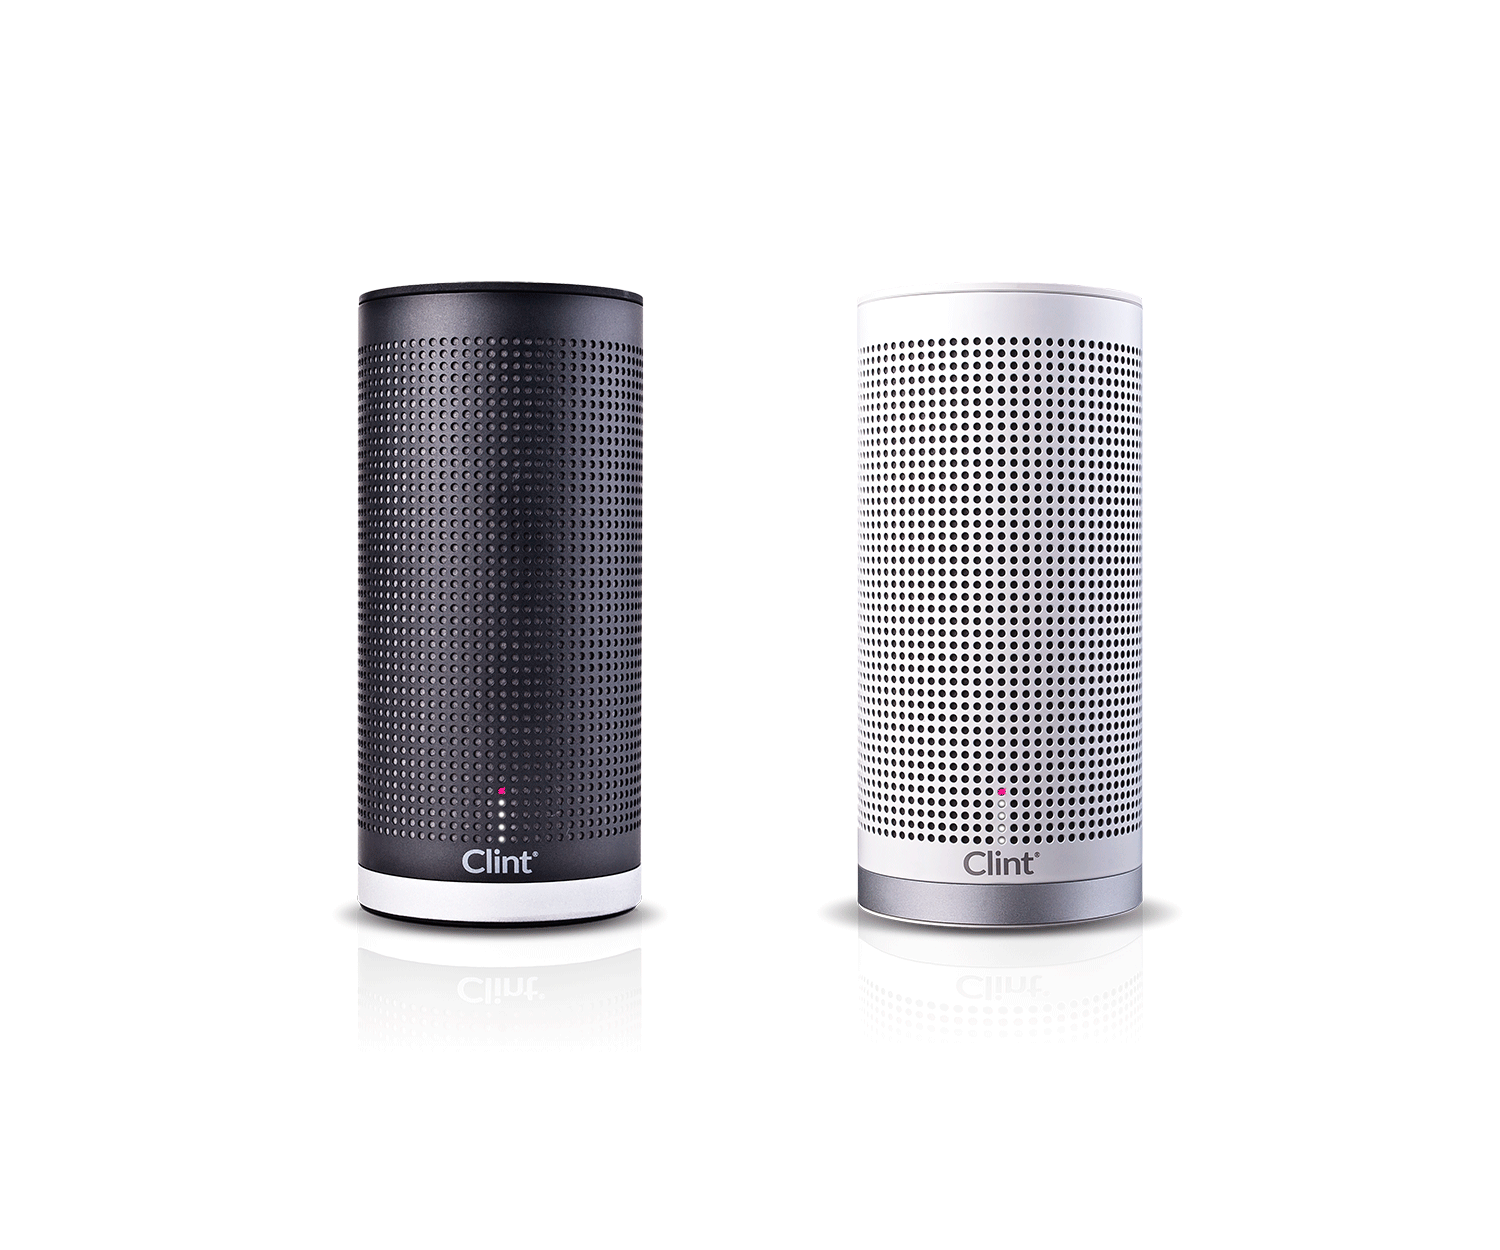 iF Design Award for Clint Audio